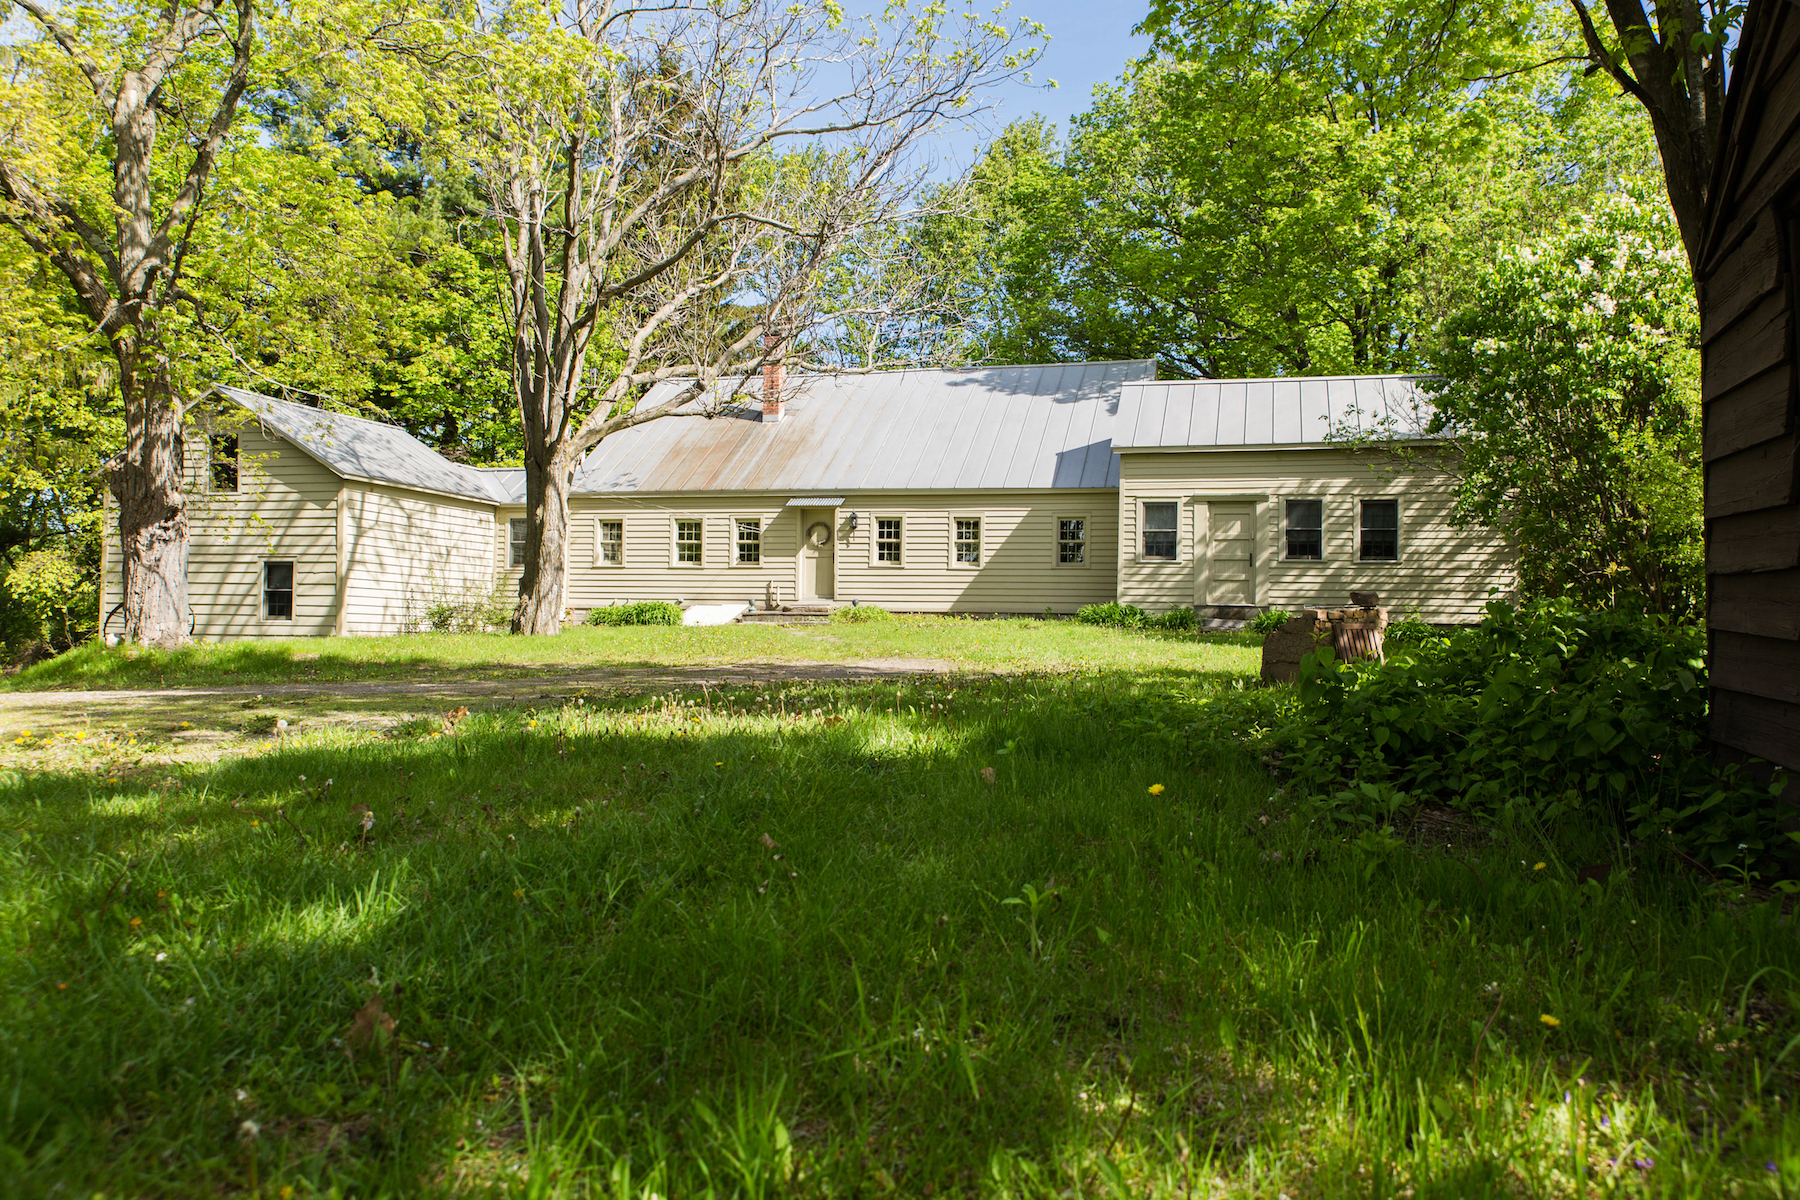 Single Family Home for Sale at Restored Farmhouse in a Quiet and Peaceful Setting 433 Bullock Rd Slingerlands, New York 12159 United States